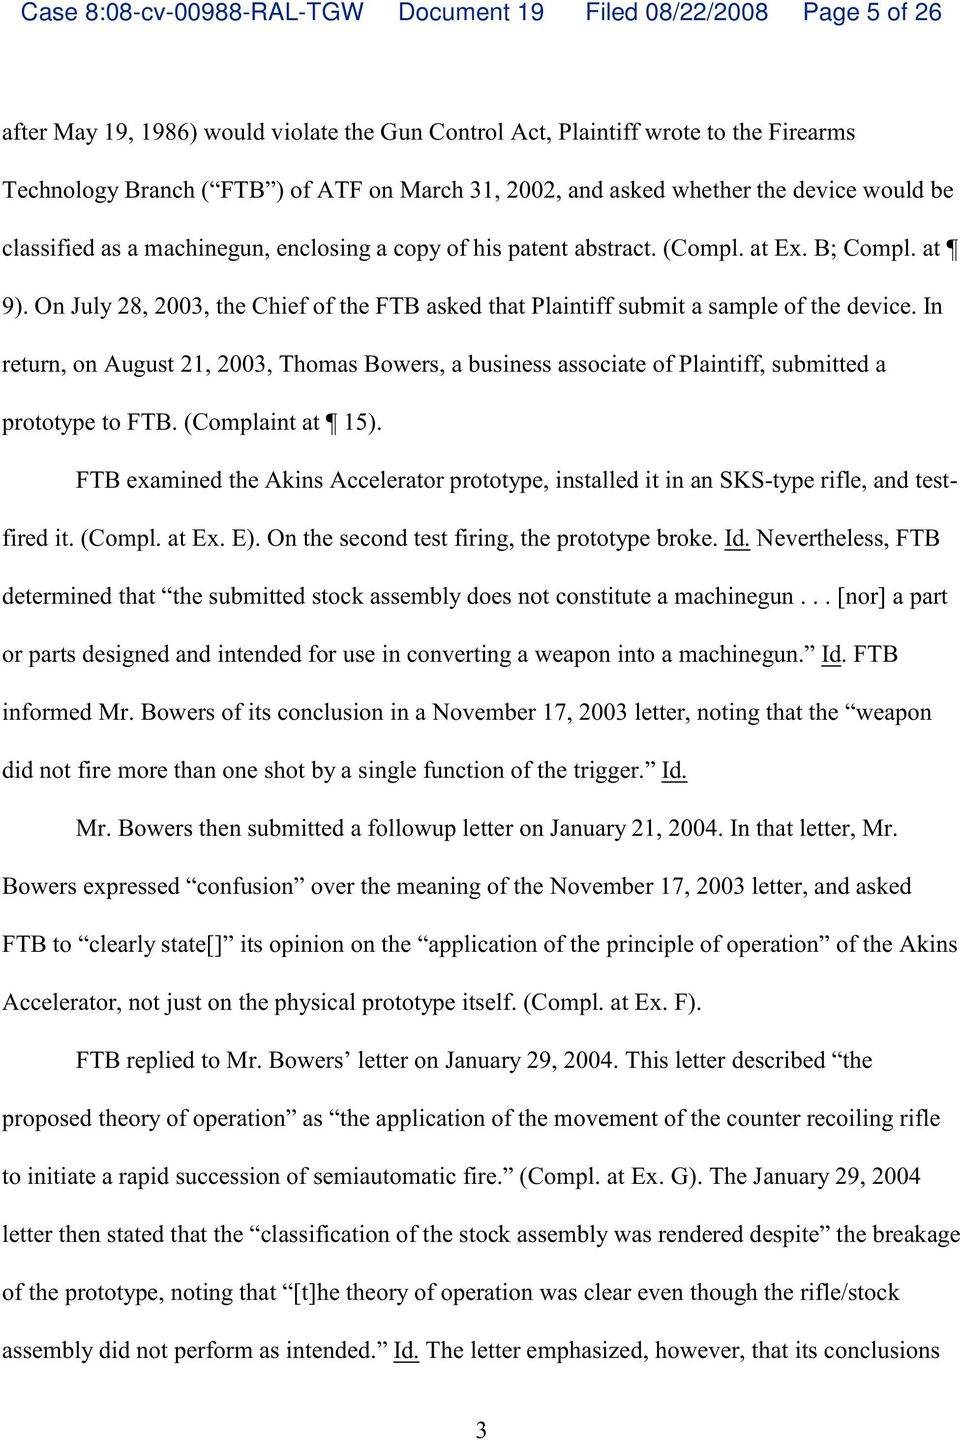 On July 28, 2003, e Chief of e FTB asked at Plaintiff submit a sample of e device. In return, on August 21, 2003, Thomas Bowers, a business associate of Plaintiff, submitted a prototype to FTB.